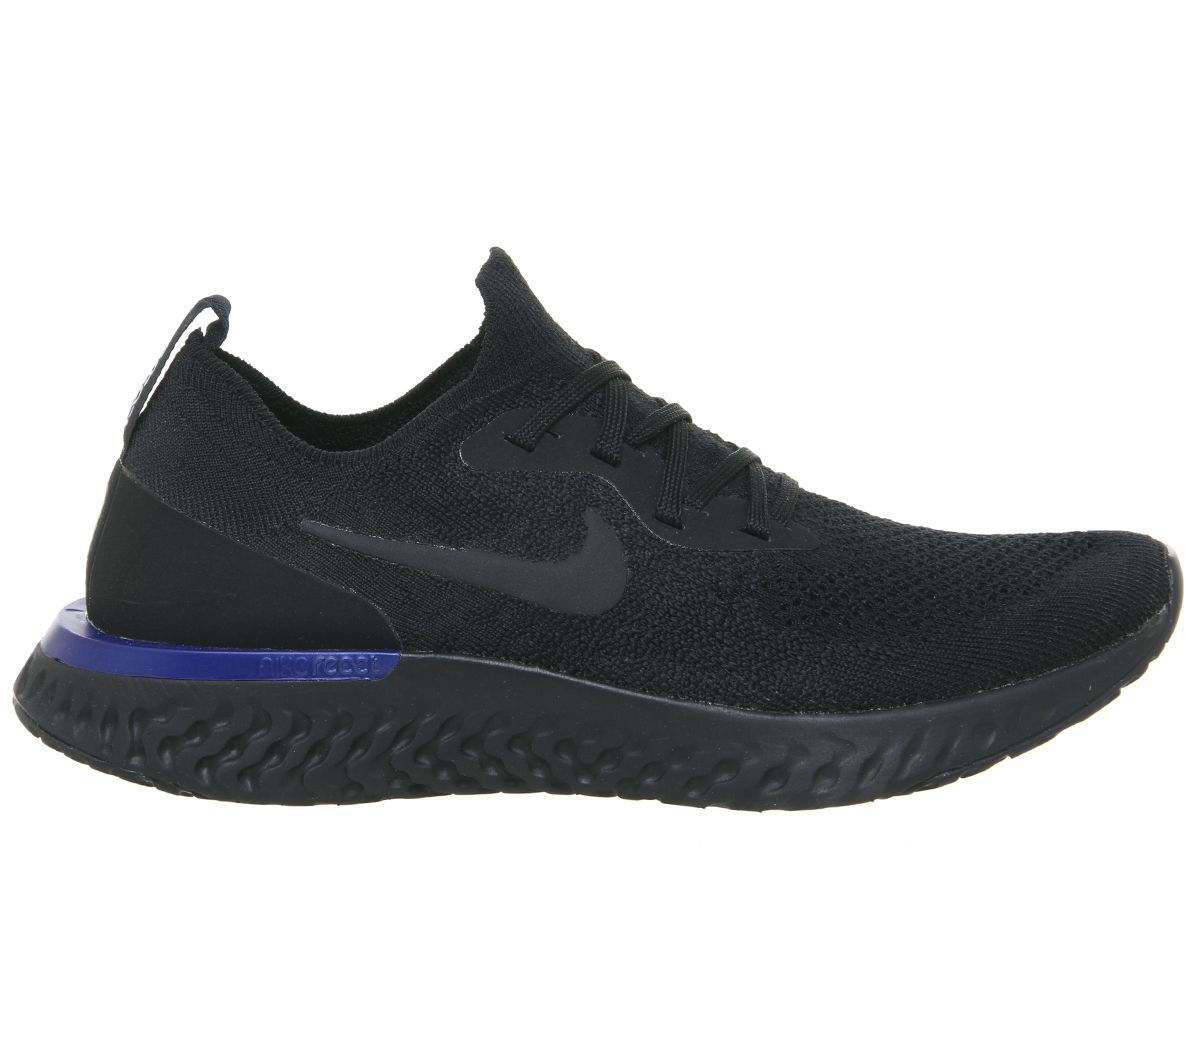 a84153a8f221c Nike Epic React Flyknit Trainers Black Racer Blue - Hers trainers